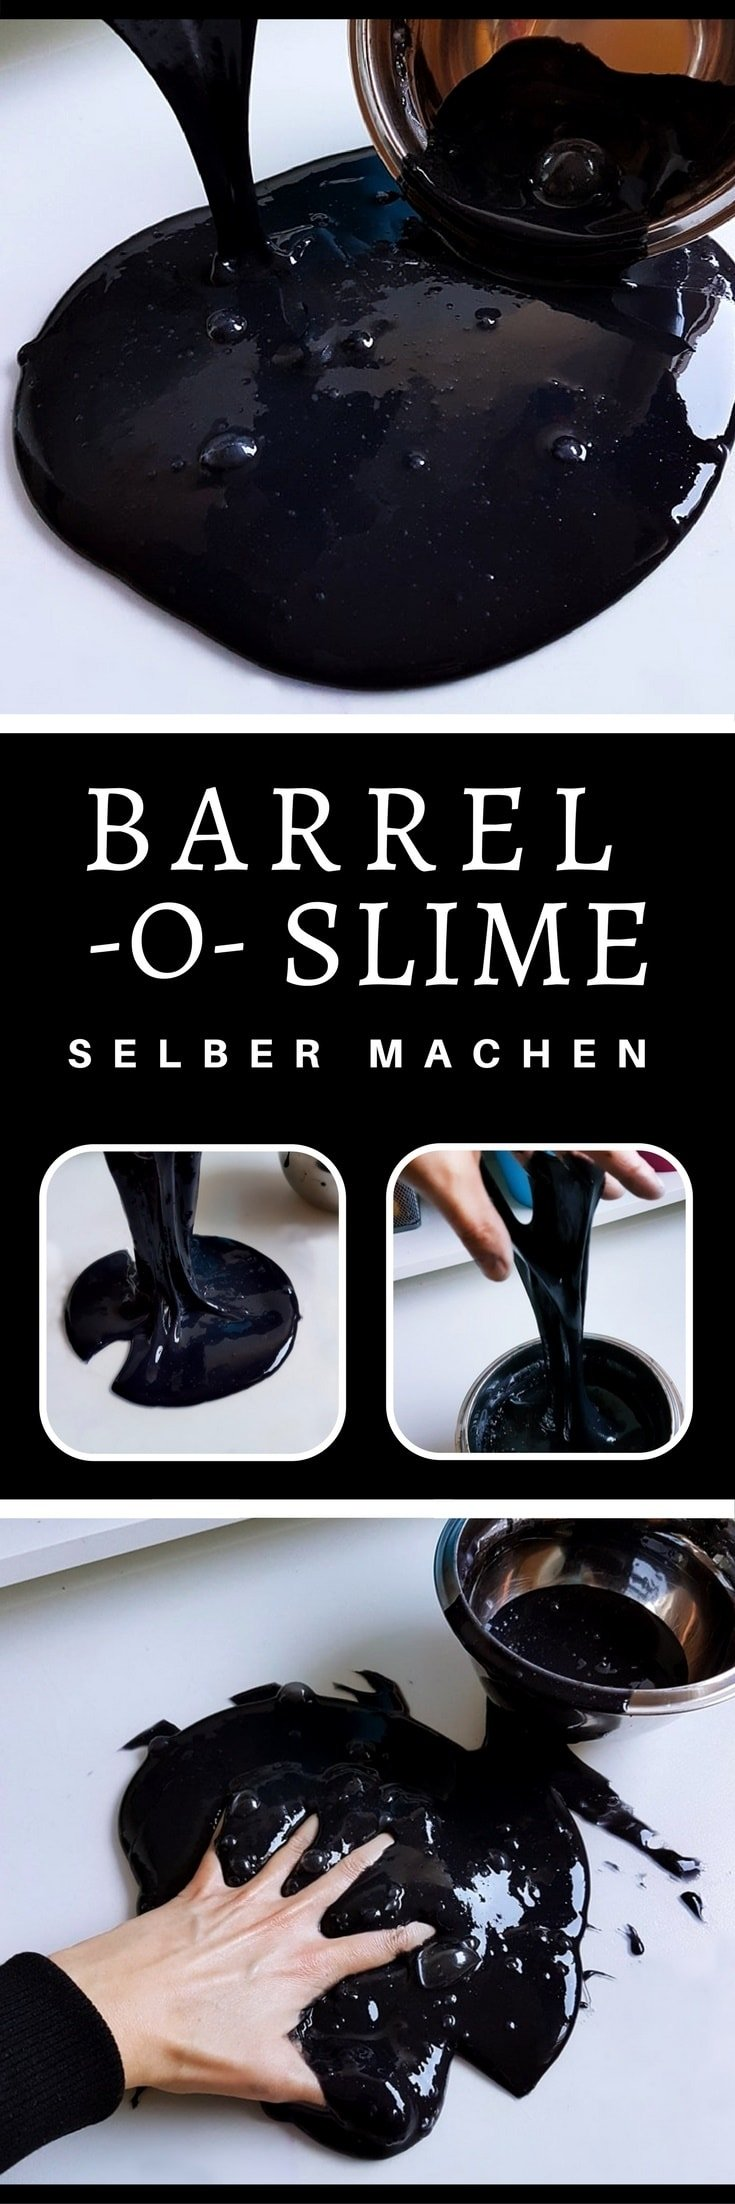 barrel o slime selber machen schleim im l fass. Black Bedroom Furniture Sets. Home Design Ideas